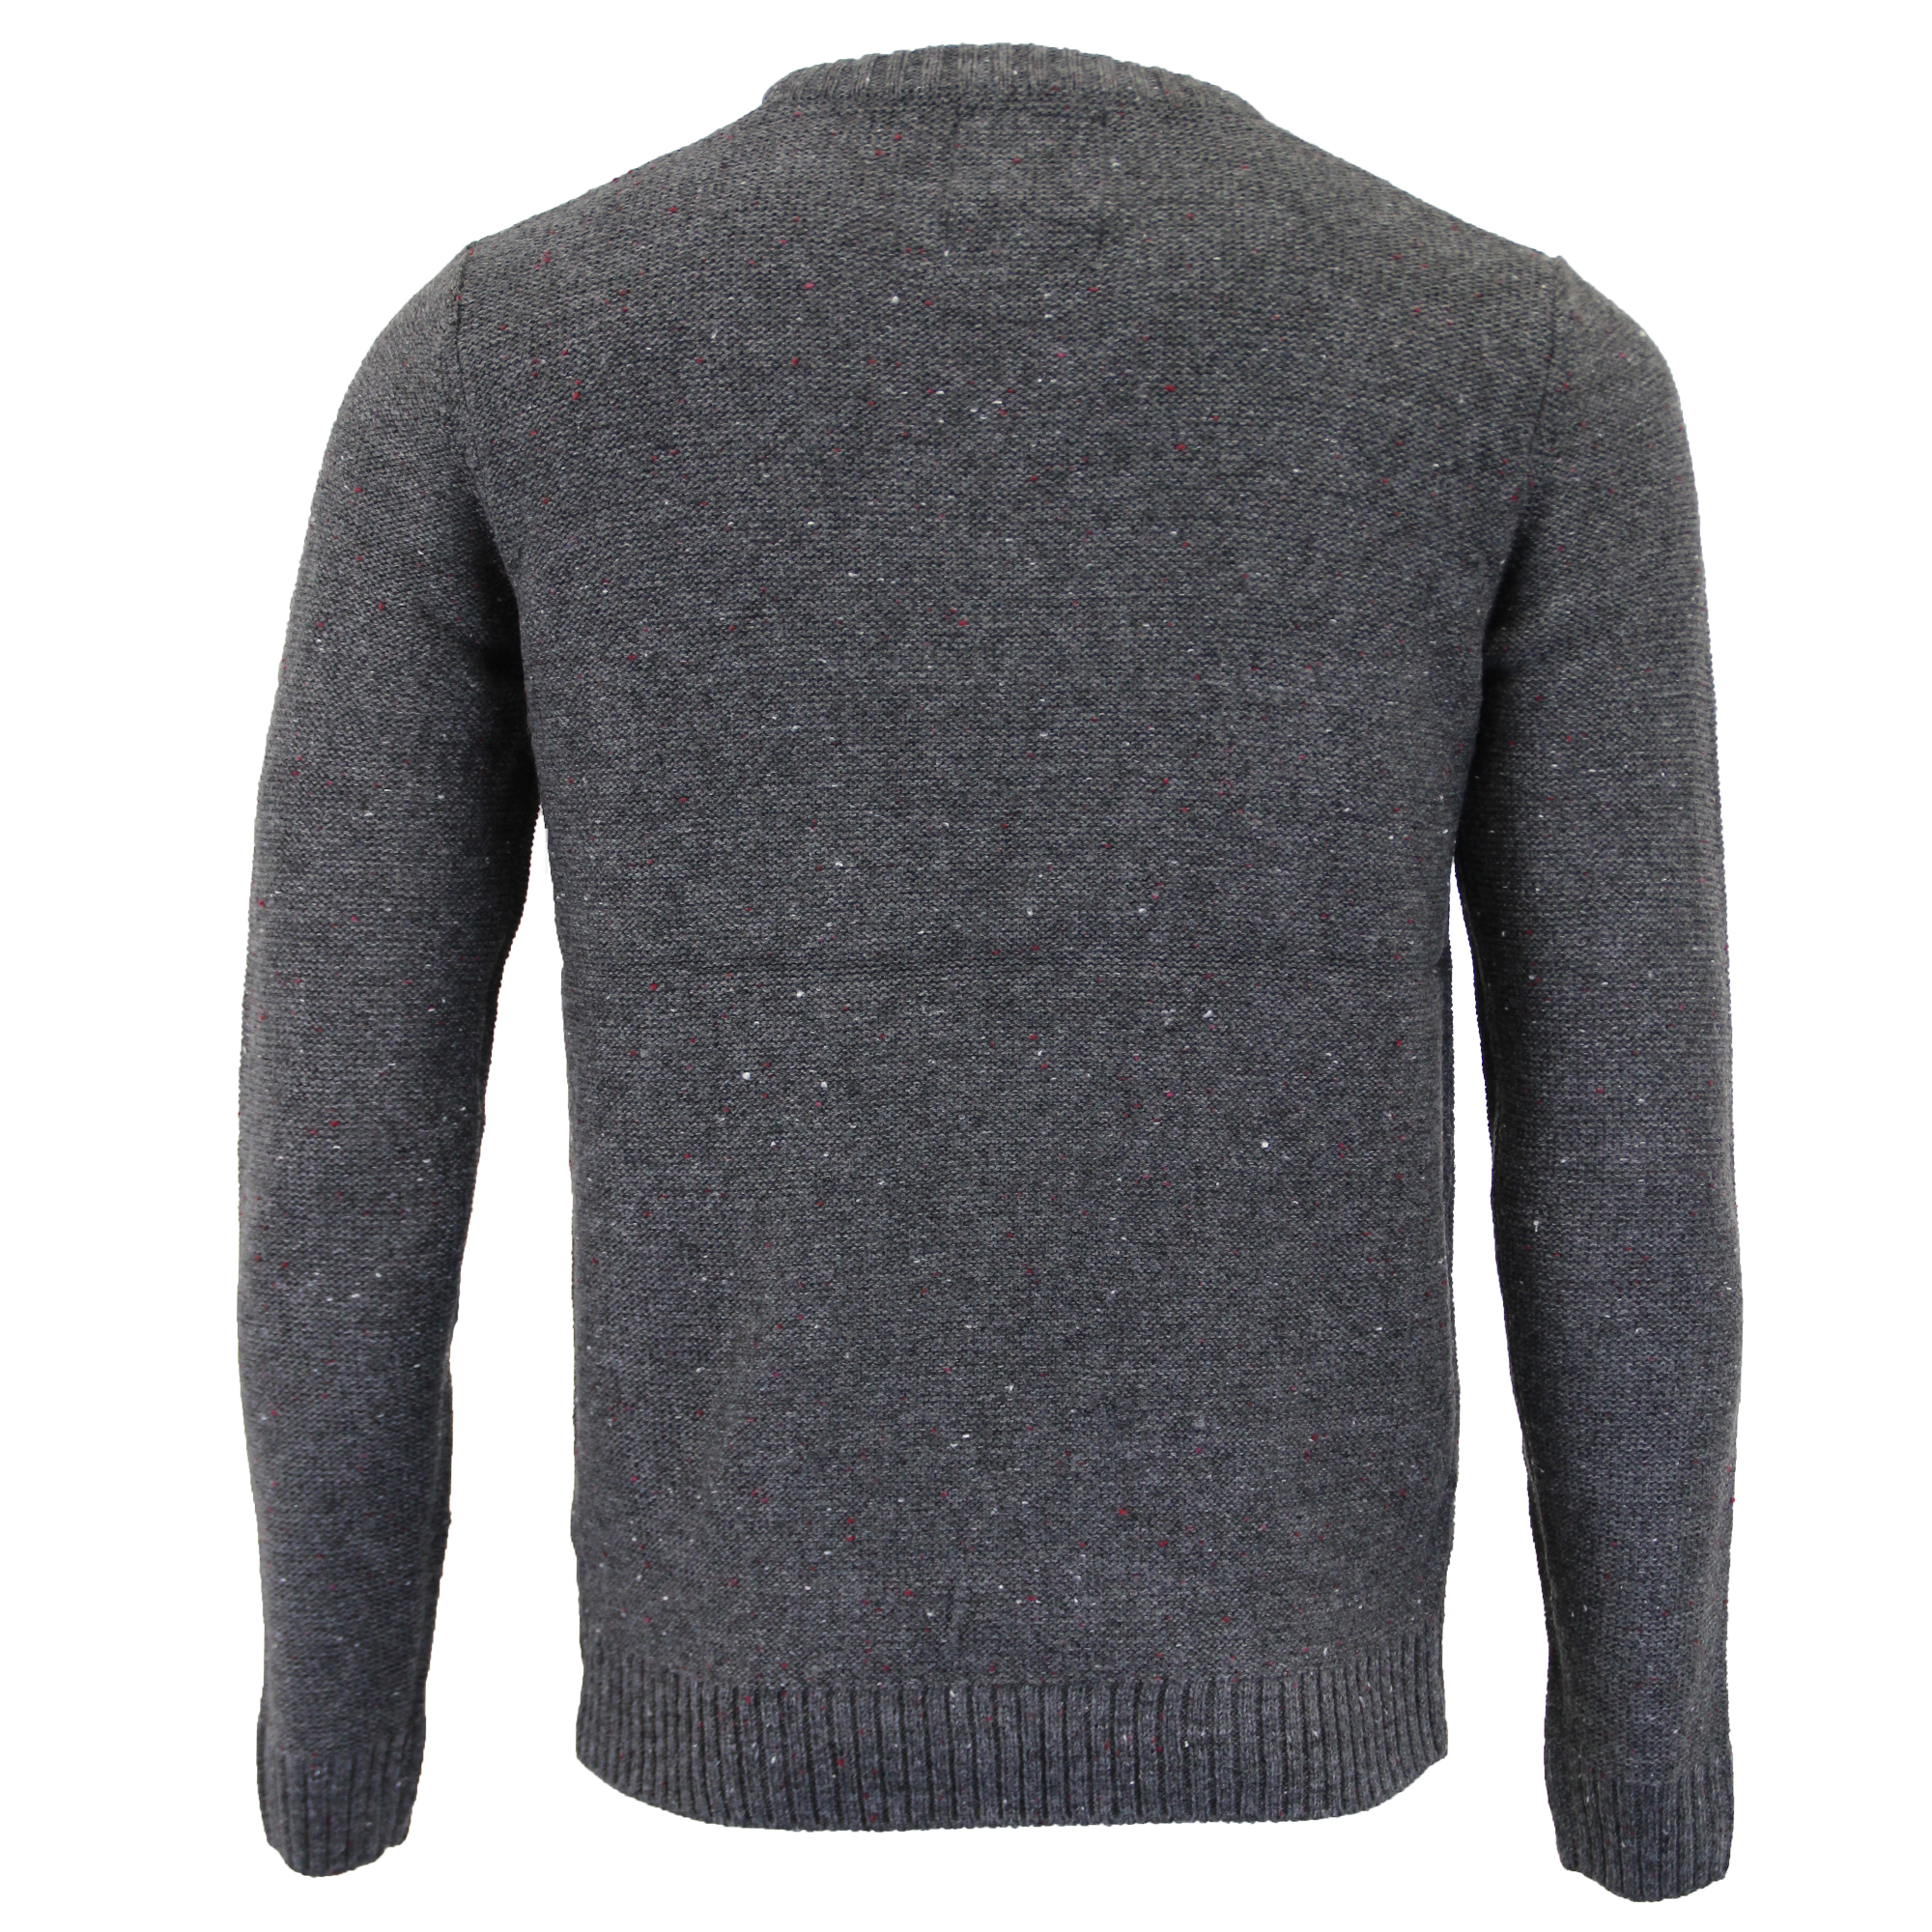 Mens-Wool-Mix-Jumper-Threadbare-Knitted-Sweater-Pullover-Top-Chunky-Zip-Winter thumbnail 6